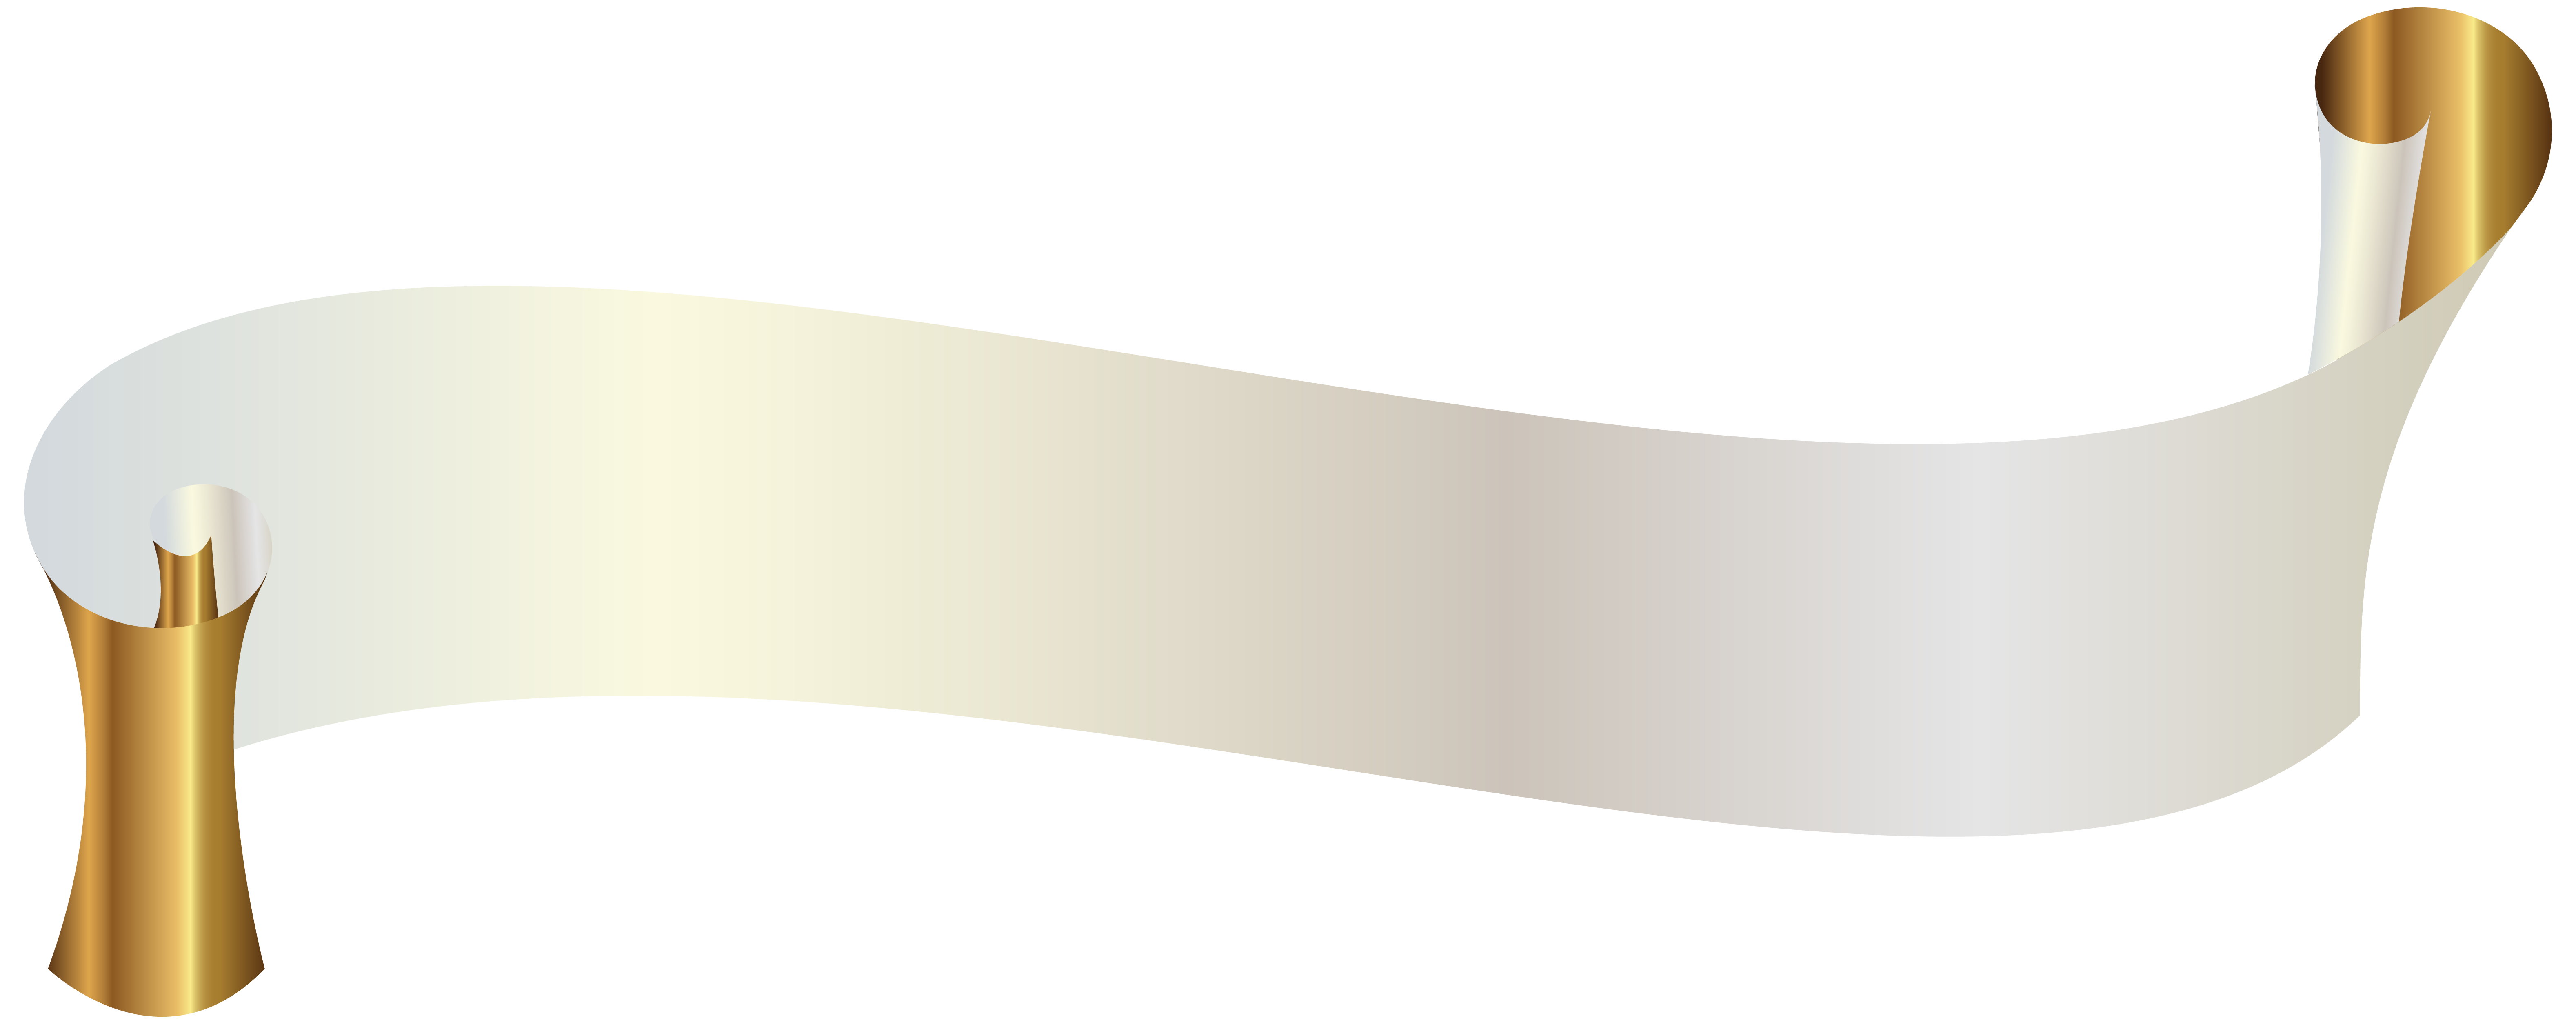 White Banner with Gold PNG Clipart Image.